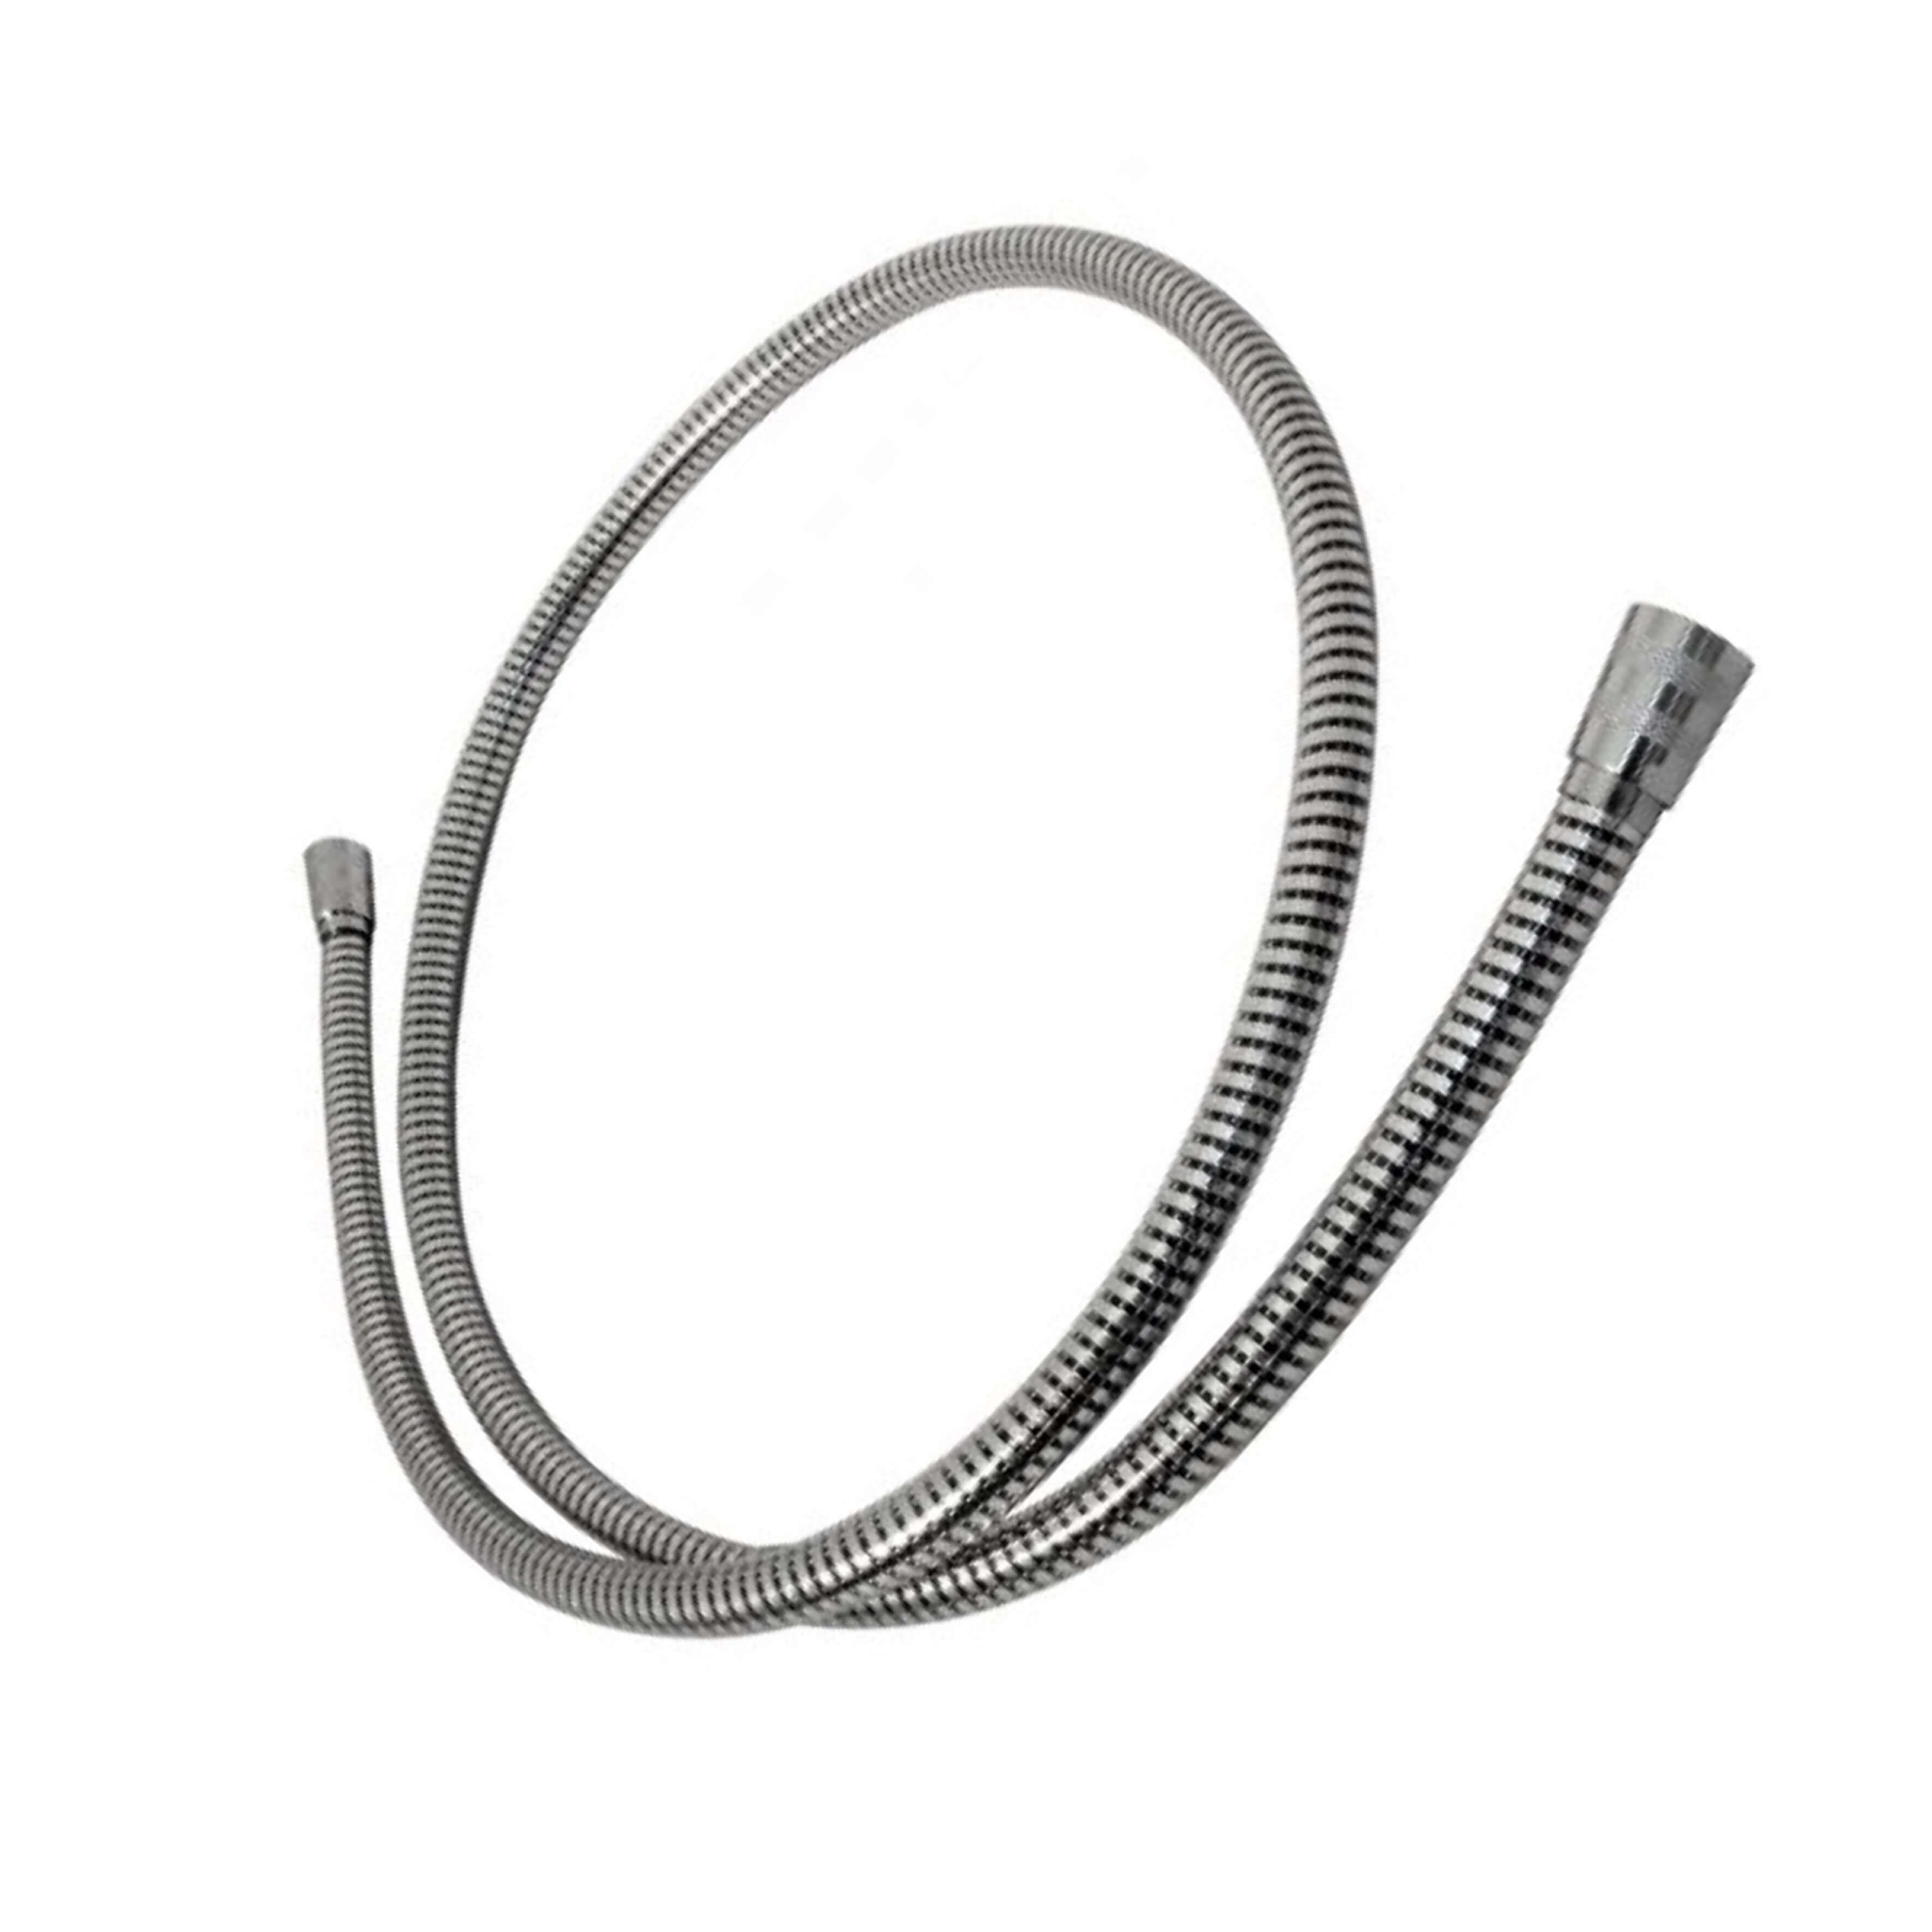 Aqualisa 1.75m Hose Chrome 518147